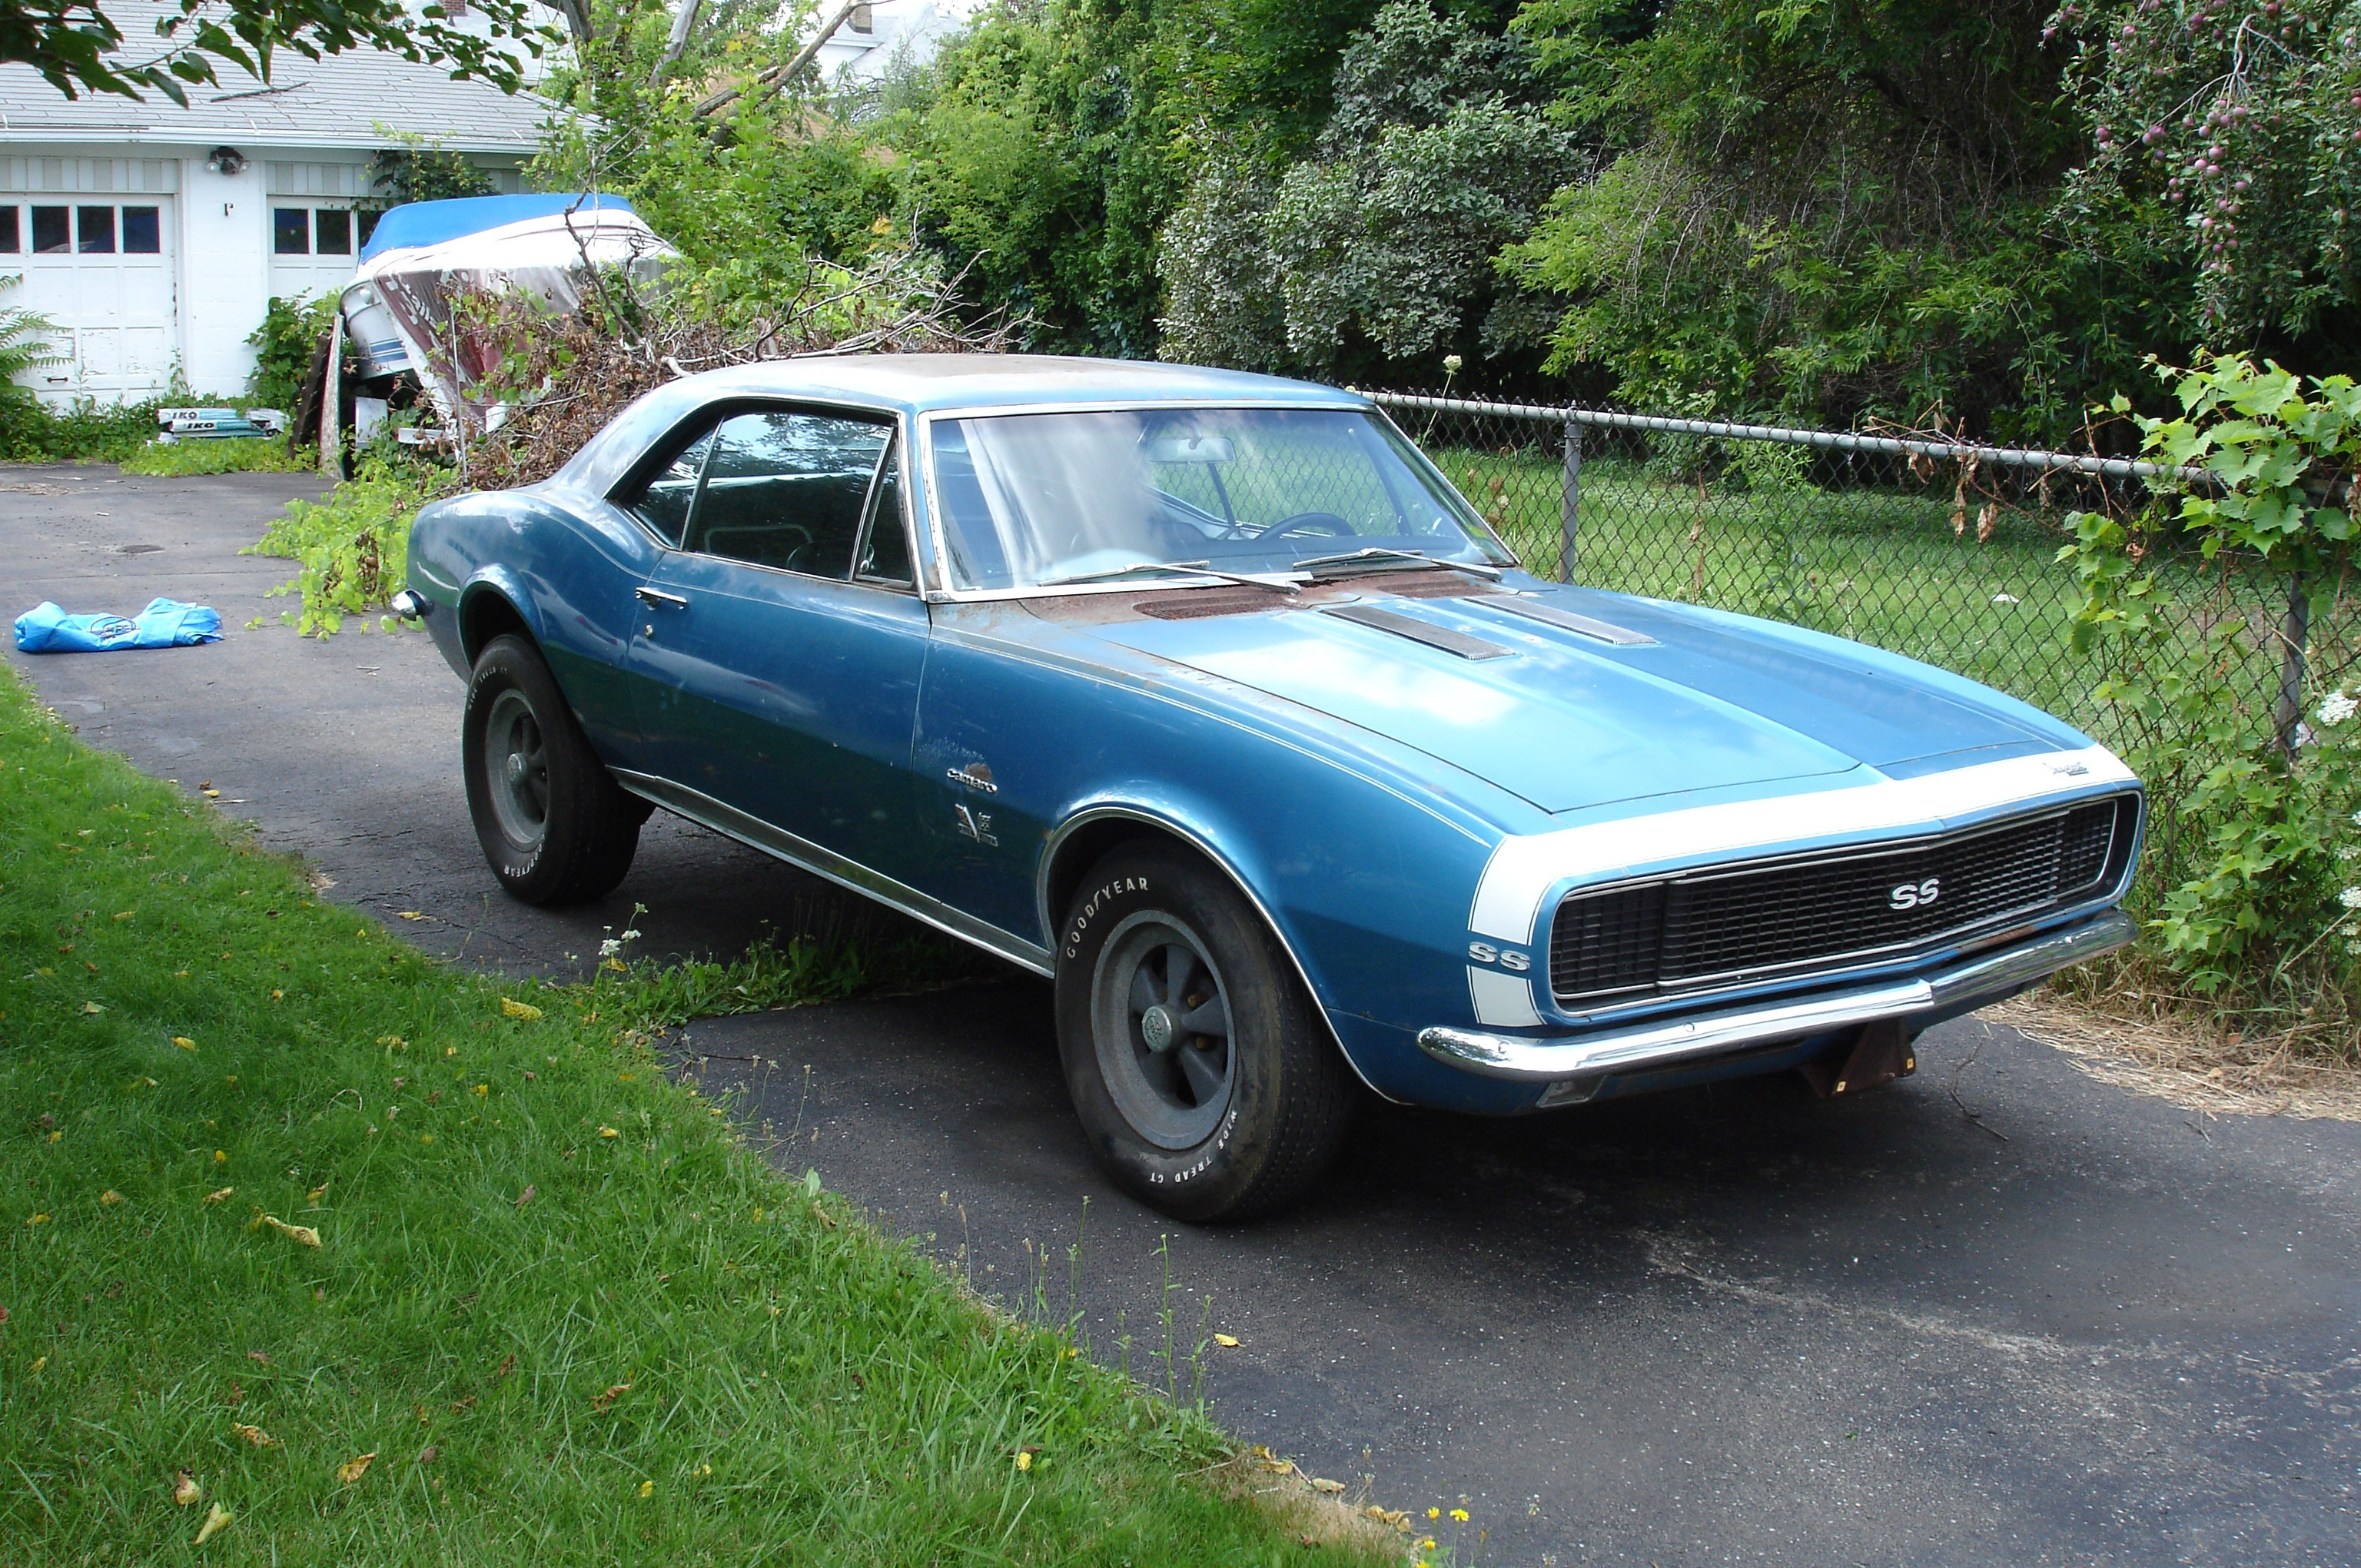 After 40 Years, Super Stock 1967 Chevrolet Camaro Sees Daylight Again